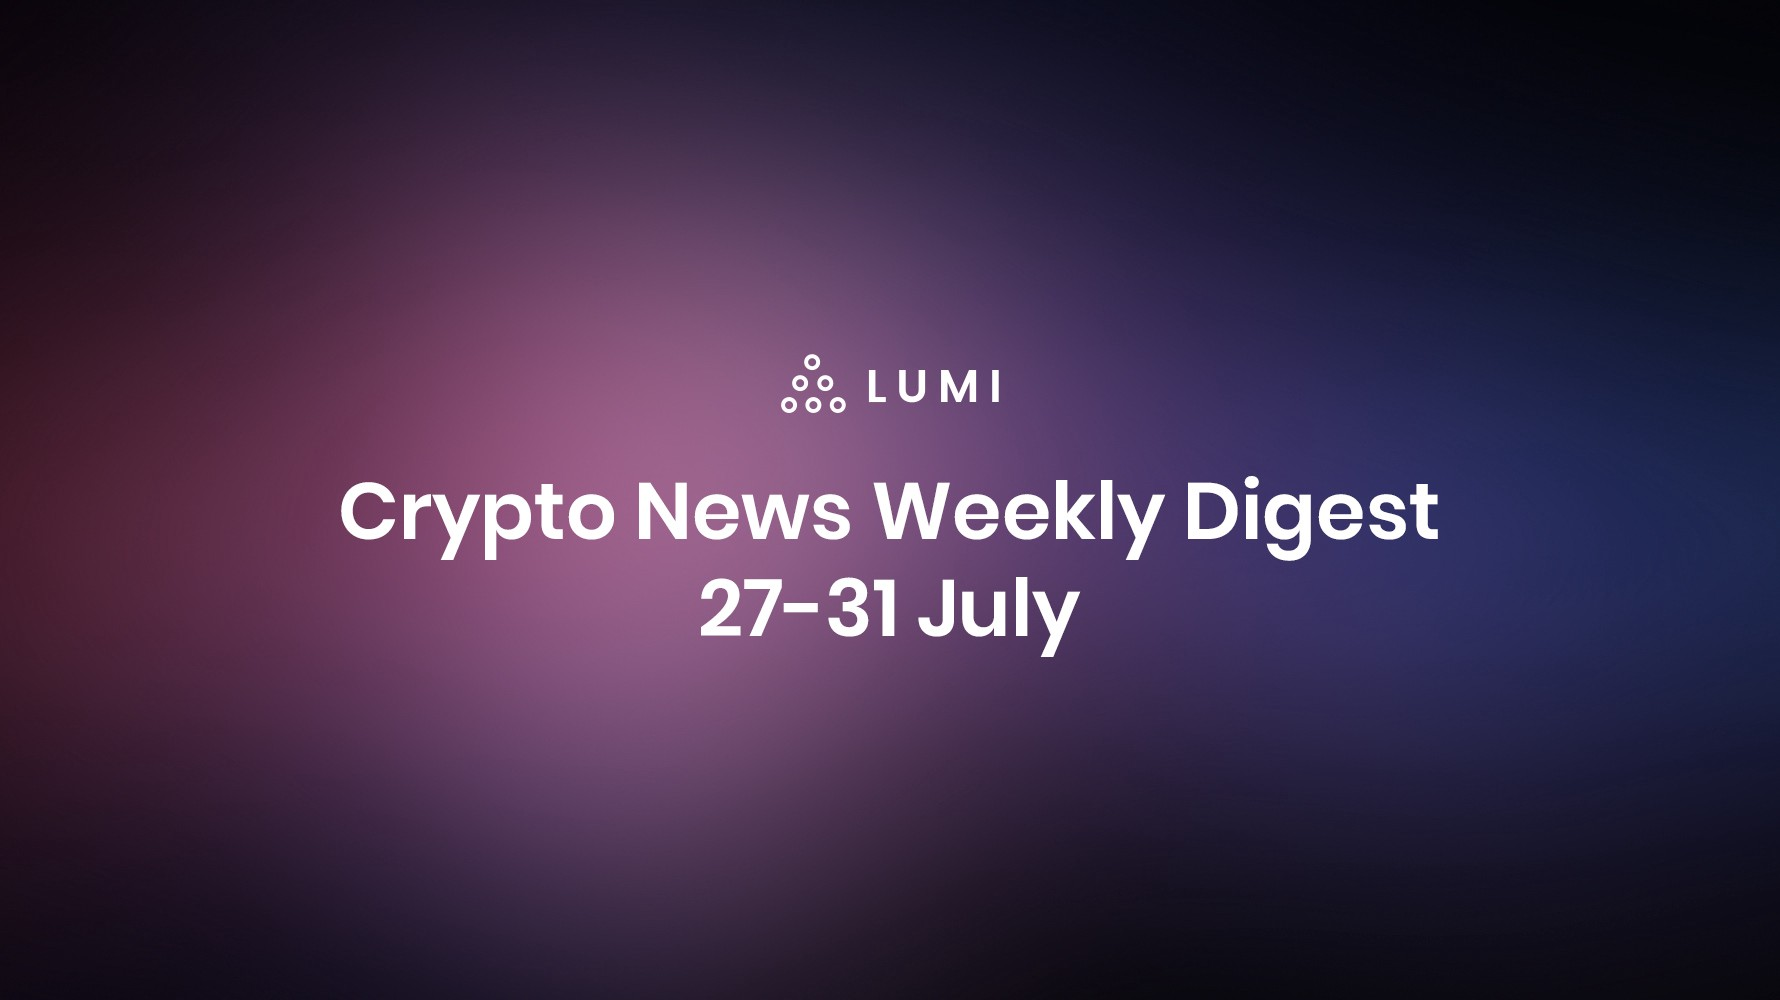 Crypto News Weekly Digest